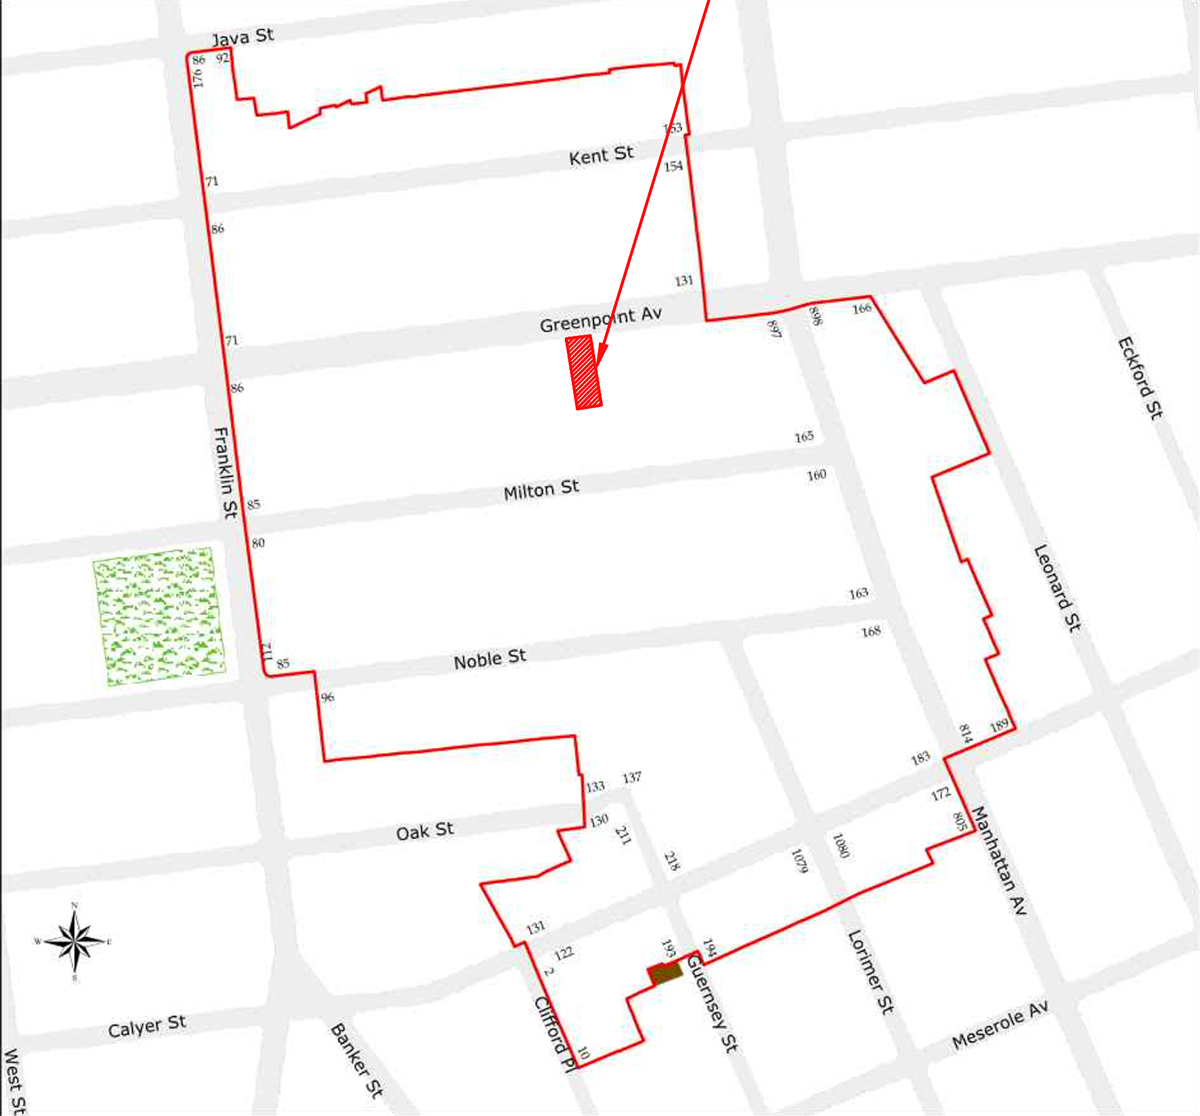 Map of Greenpoint Historic District and 134 Greenpoint Avenue (highlighted in red) - Atelier Adam Jakubowski